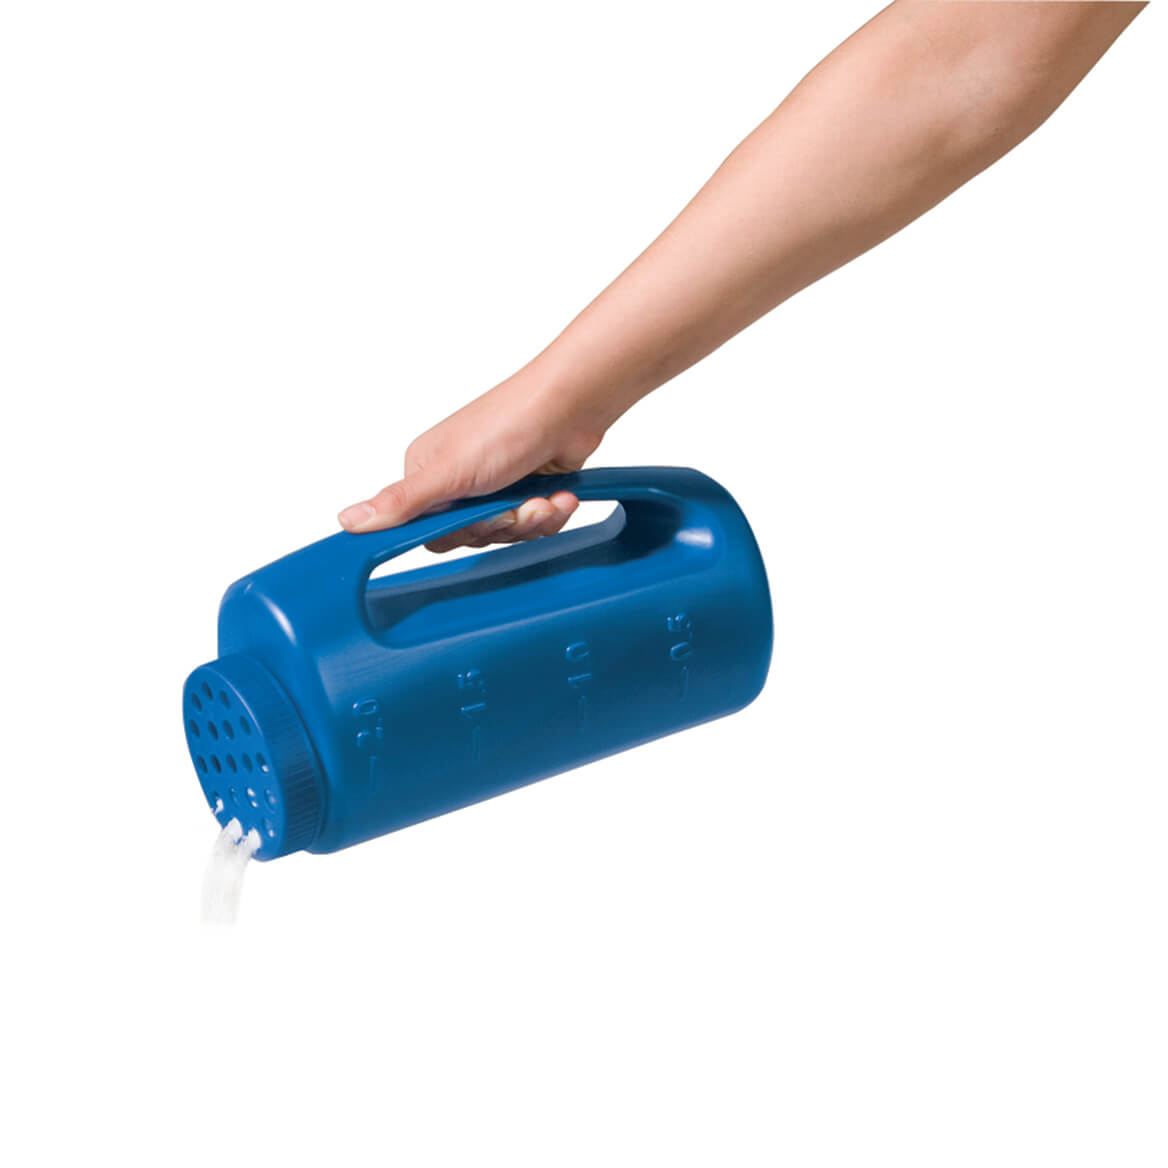 Handheld Outdoor Salt Spreader